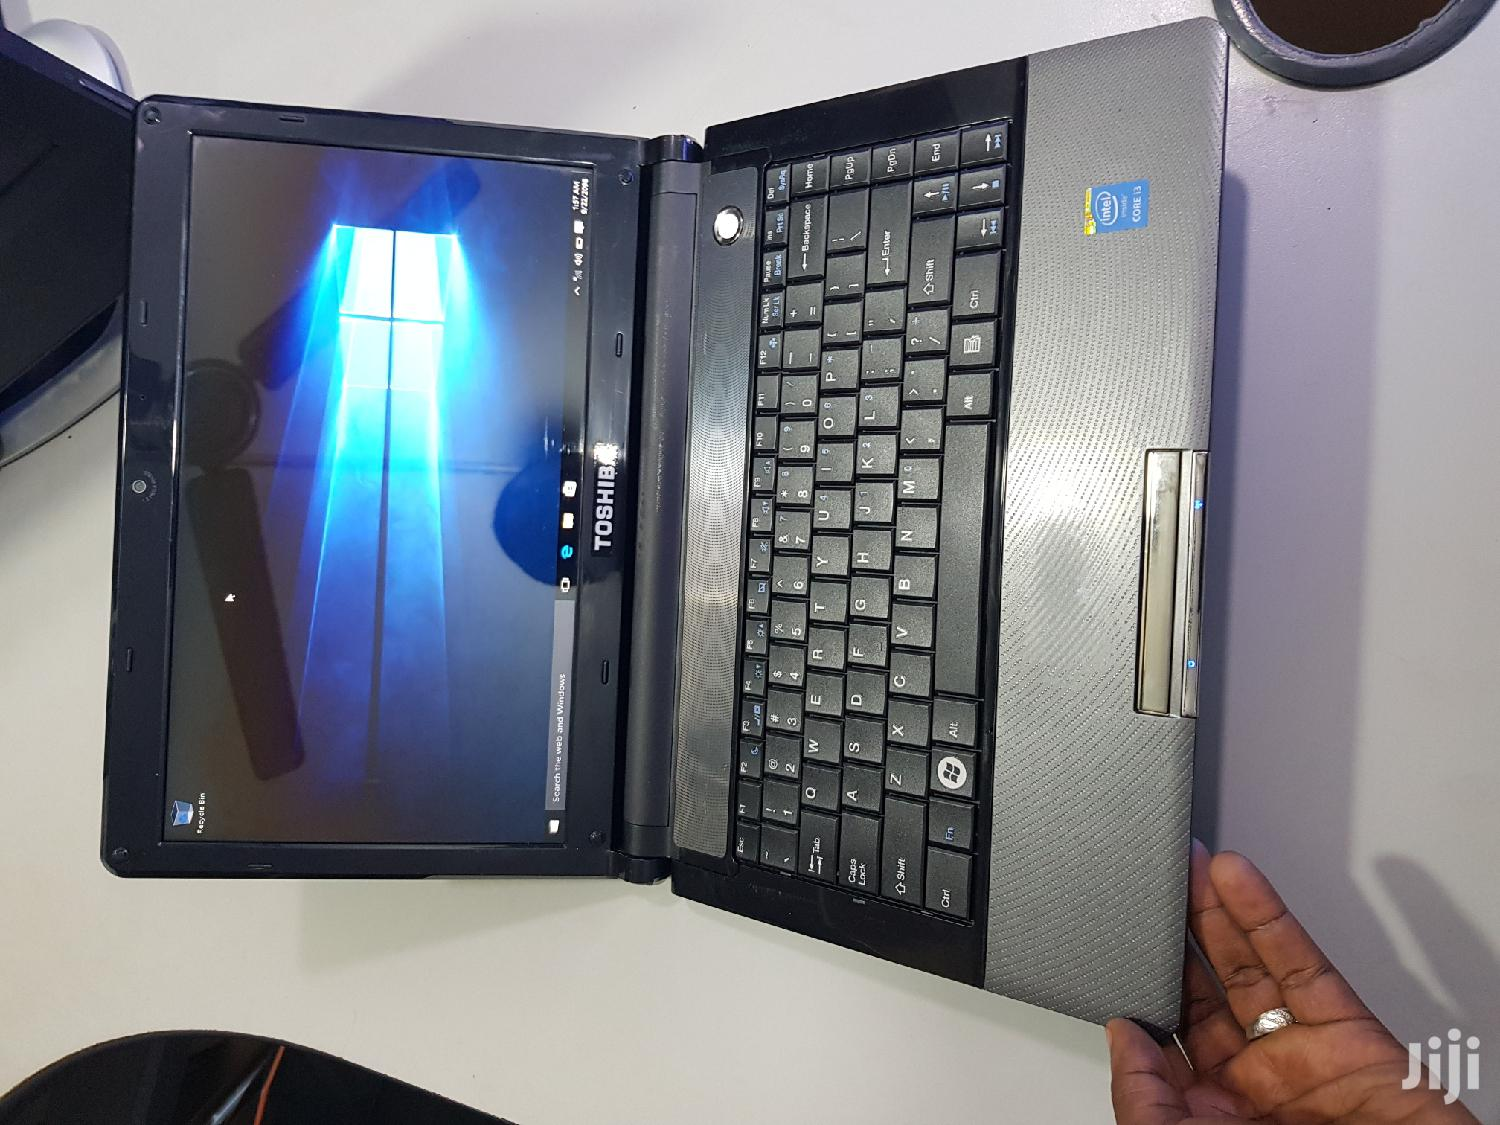 Laptop Toshiba Portege A30 4GB Intel Core I3 HDD 320GB | Laptops & Computers for sale in Kampala, Central Region, Uganda